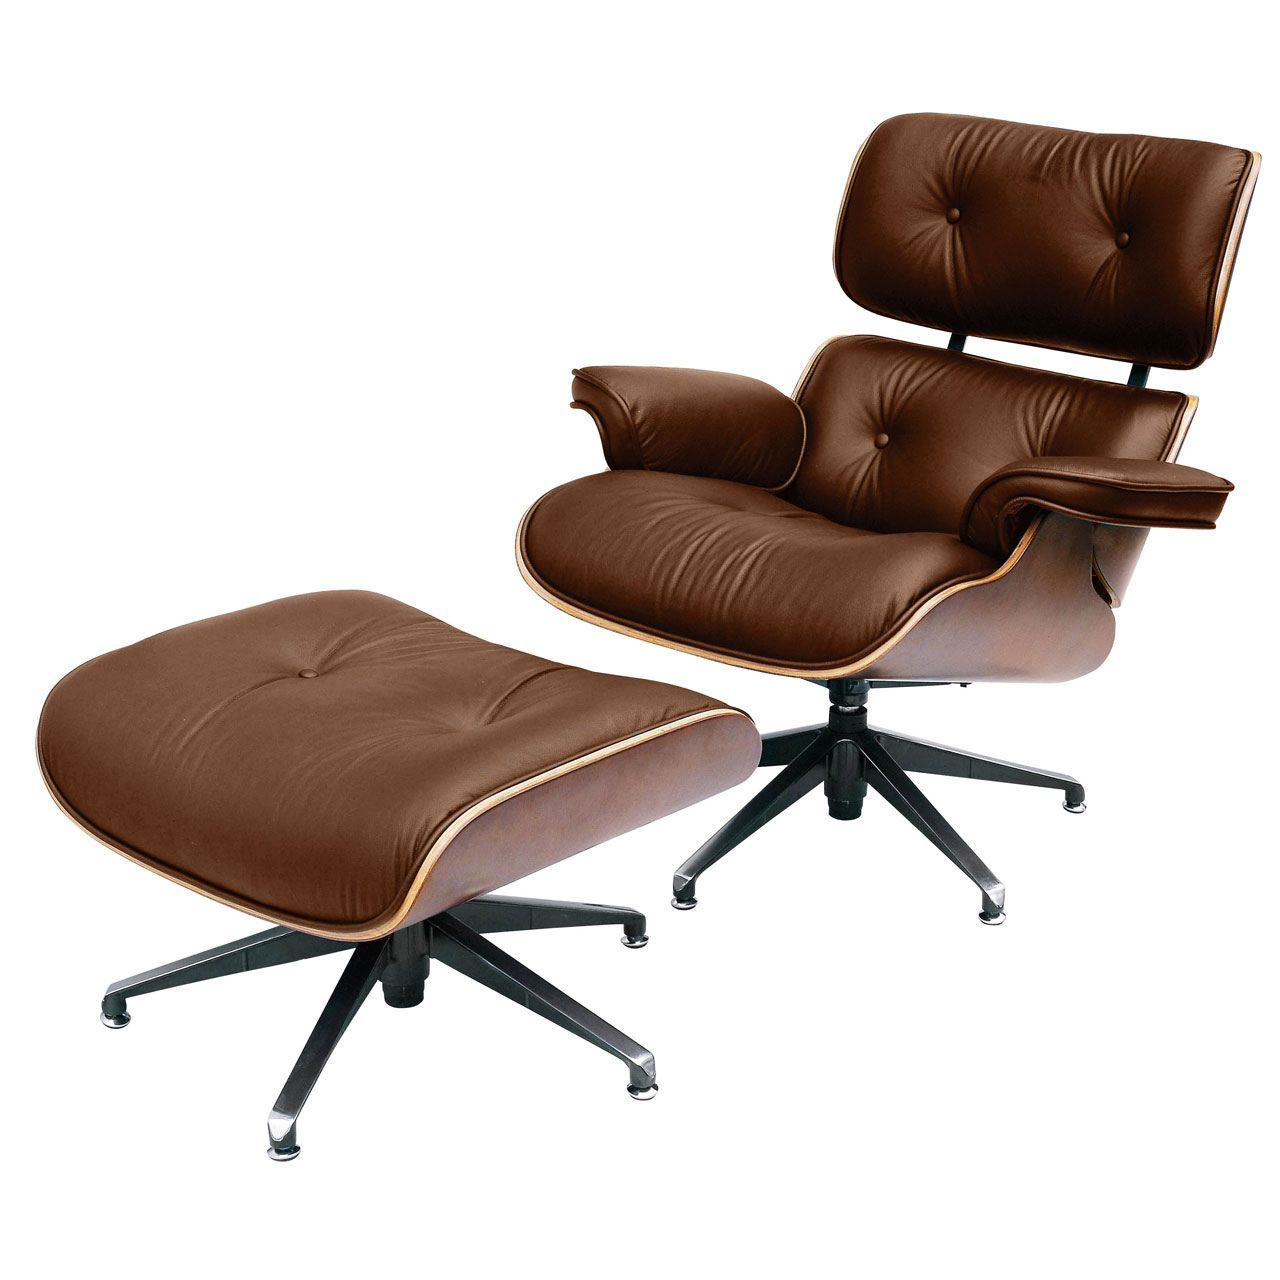 Beau 50+ Real Leather Swivel Recliner Chairs   Best Bedroom Furniture Check More  At Http: